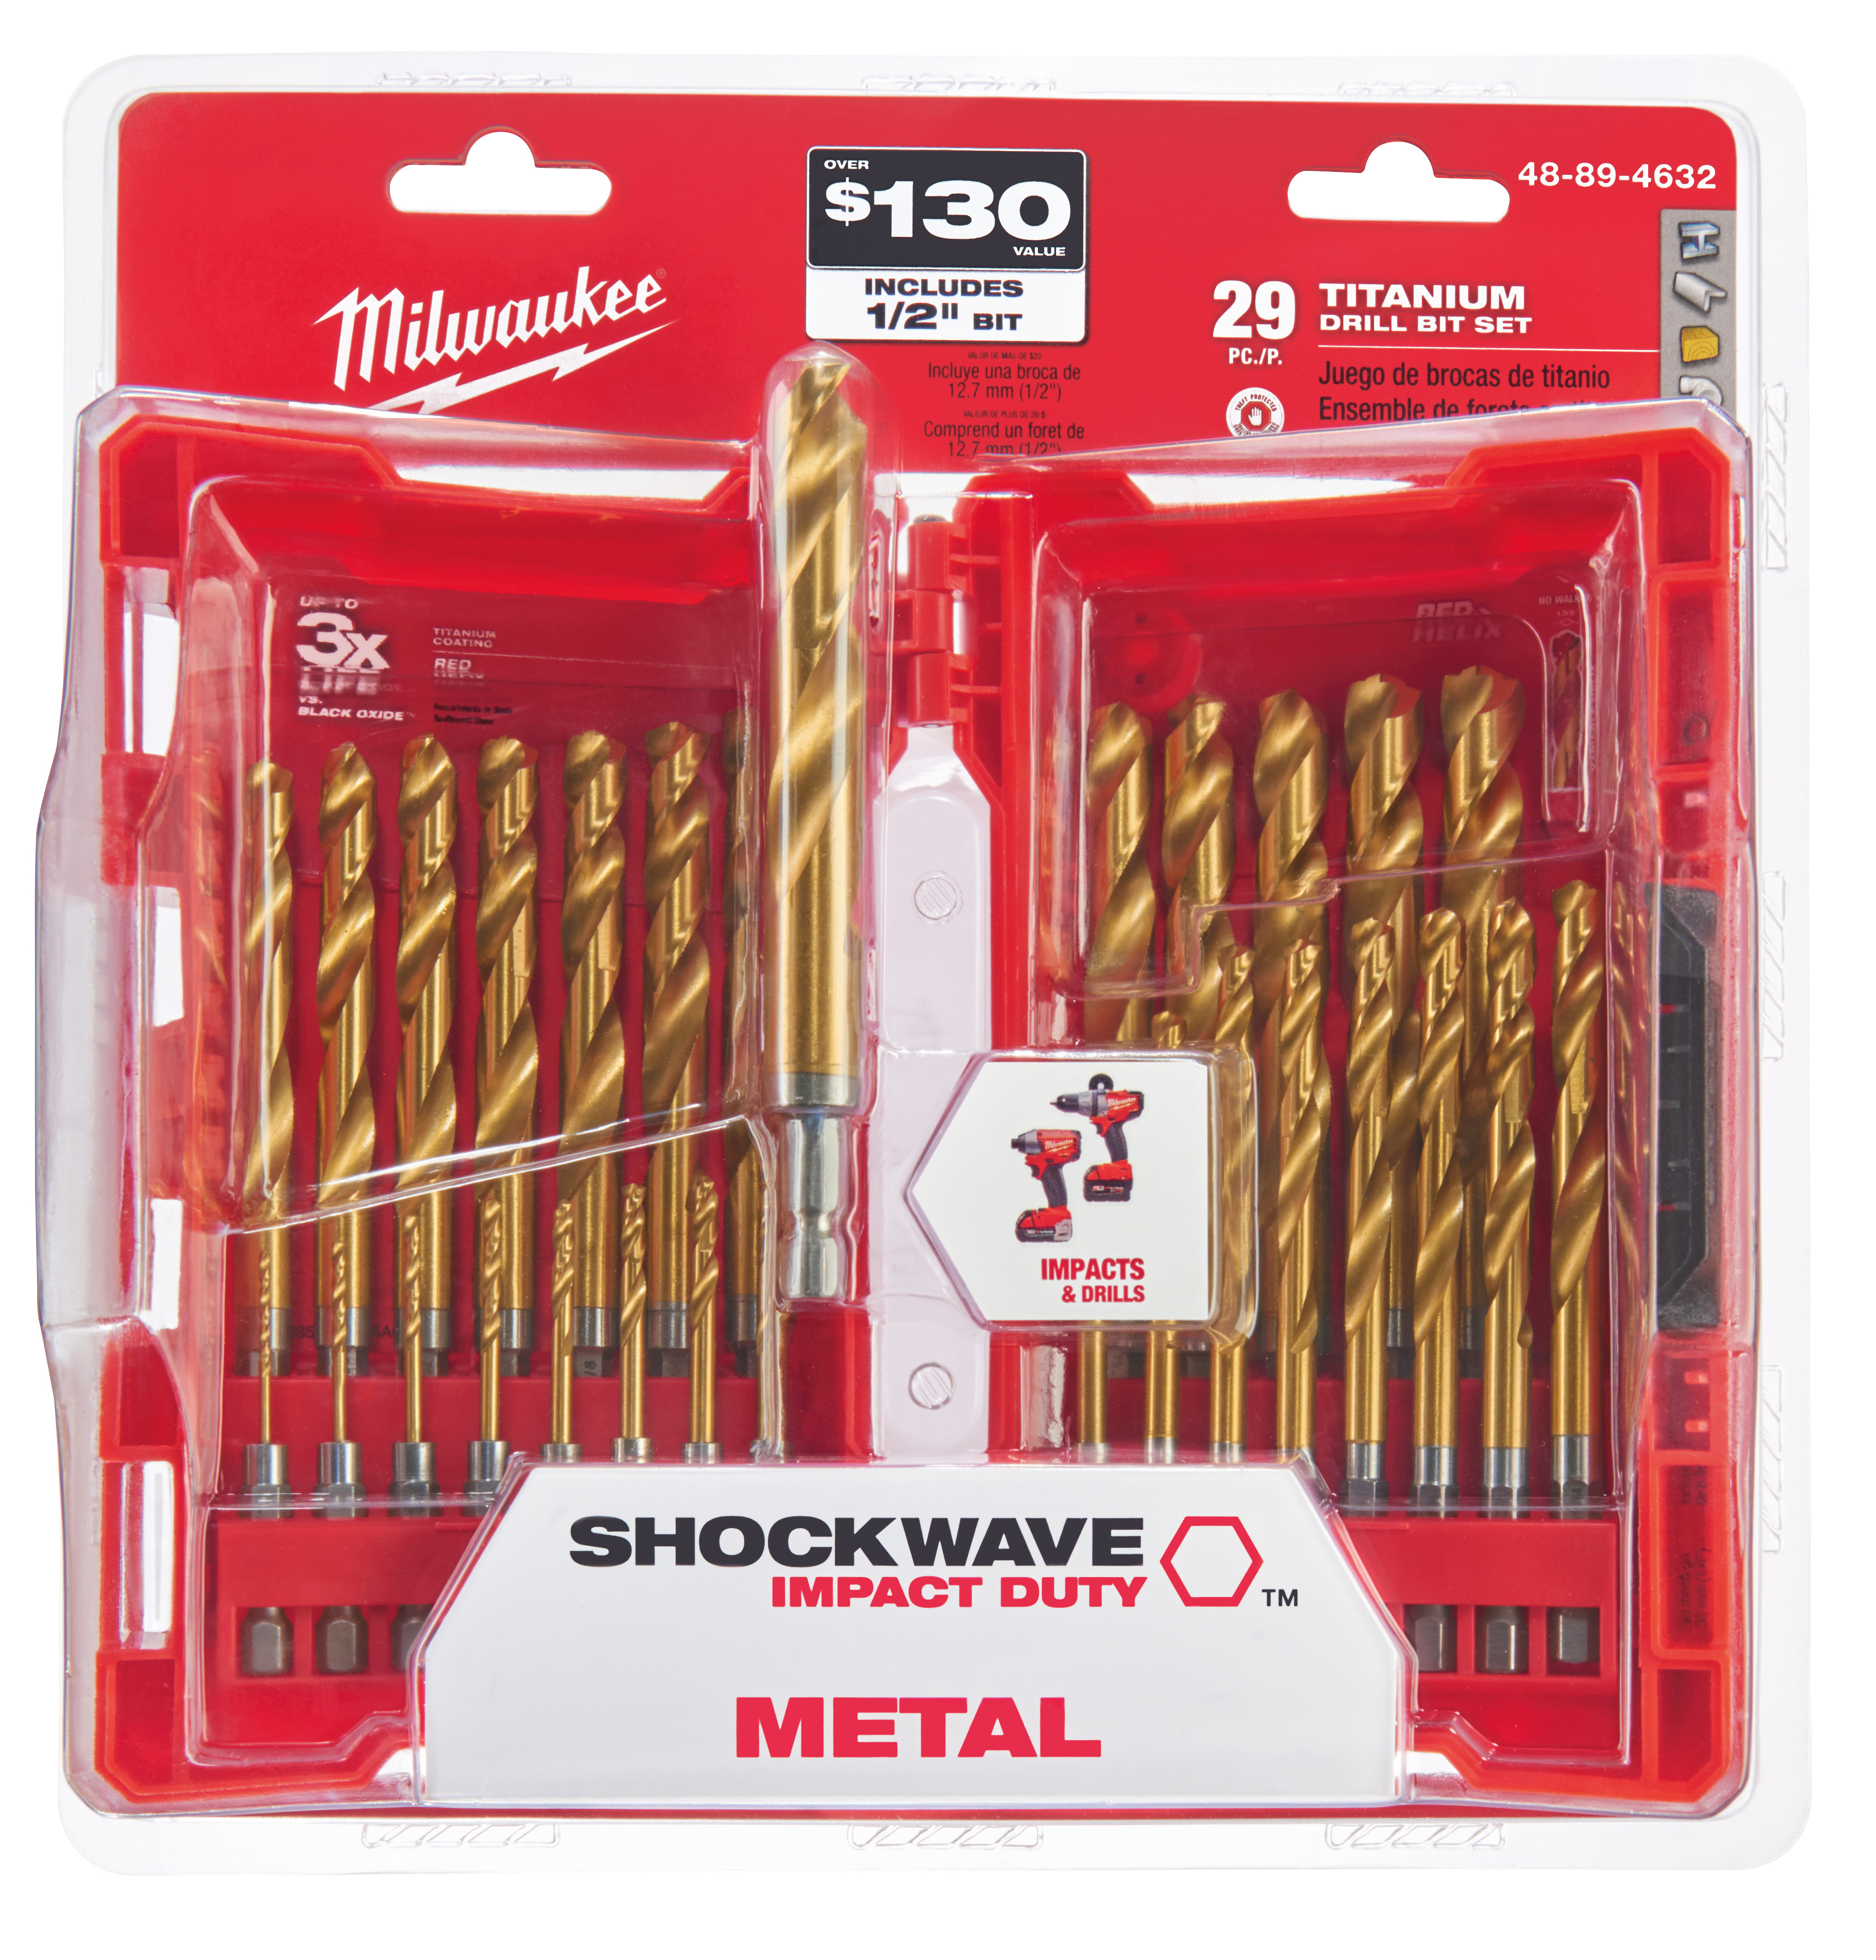 Milwaukee® 48-89-4632 SHOCKWAVE™ RED HELIX™ Impact Duty Drill Bit Kit, 29 Pieces, For Use With All Drill, HSS, Titanium Coated